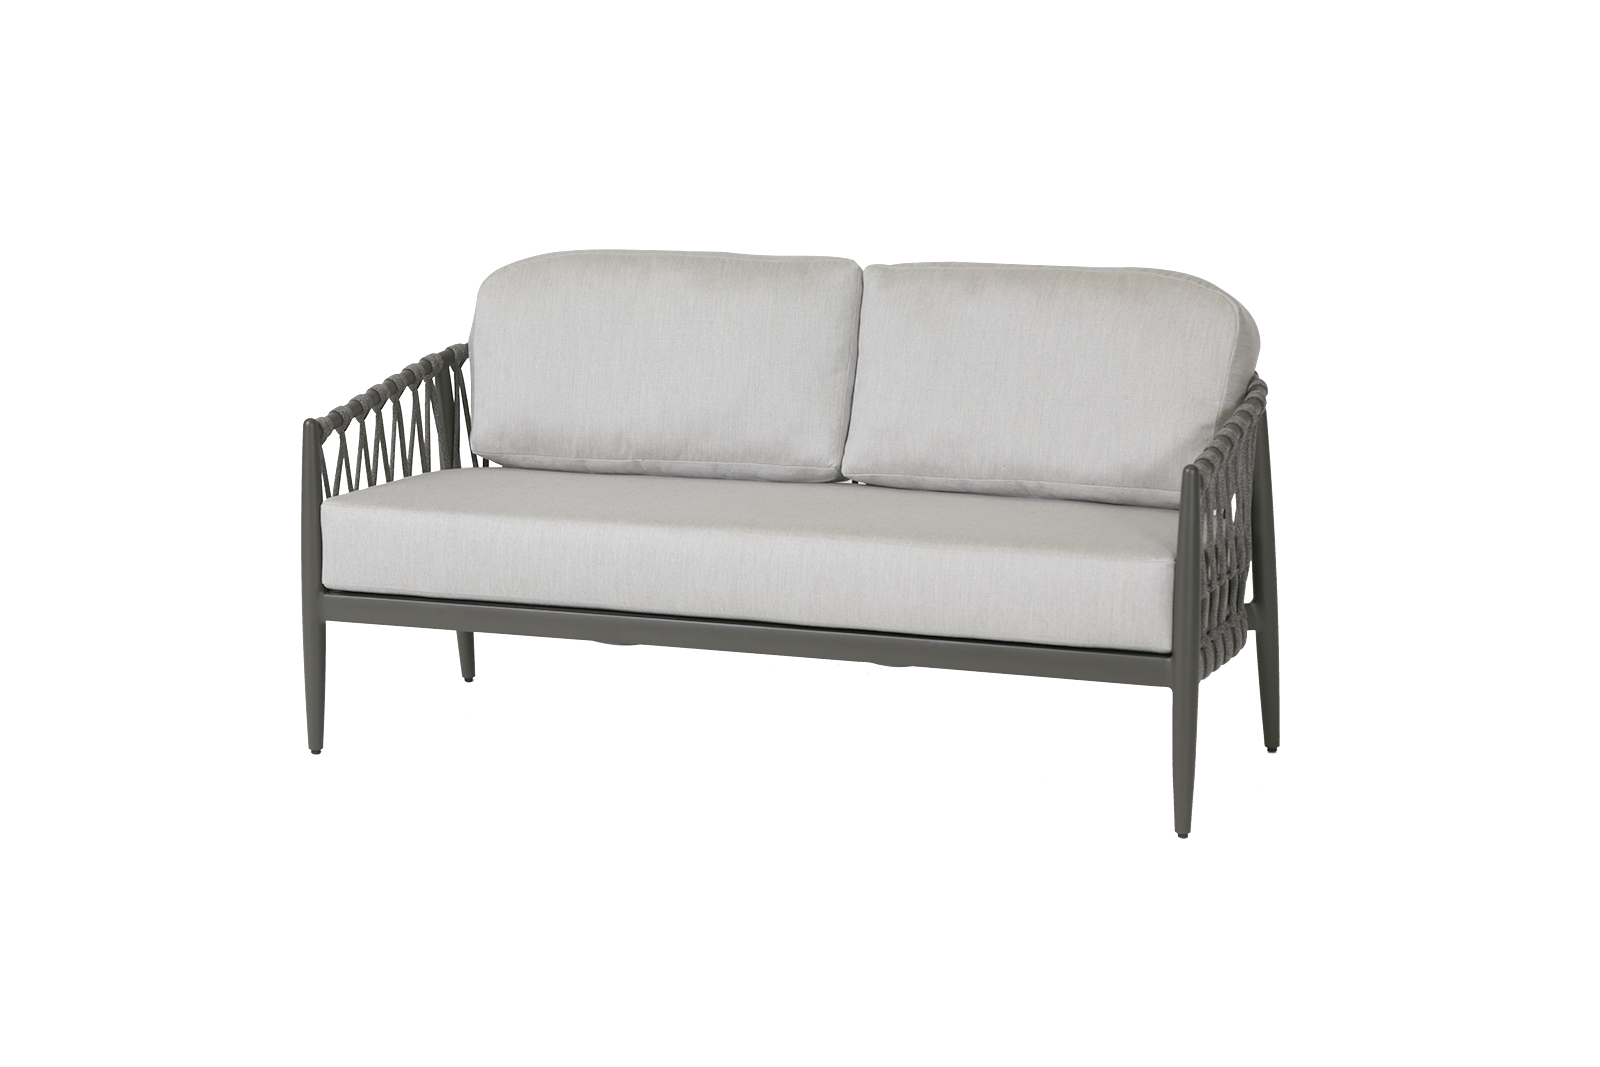 Lamego 2.5 seater sofa with rope design frame and light color cushions.